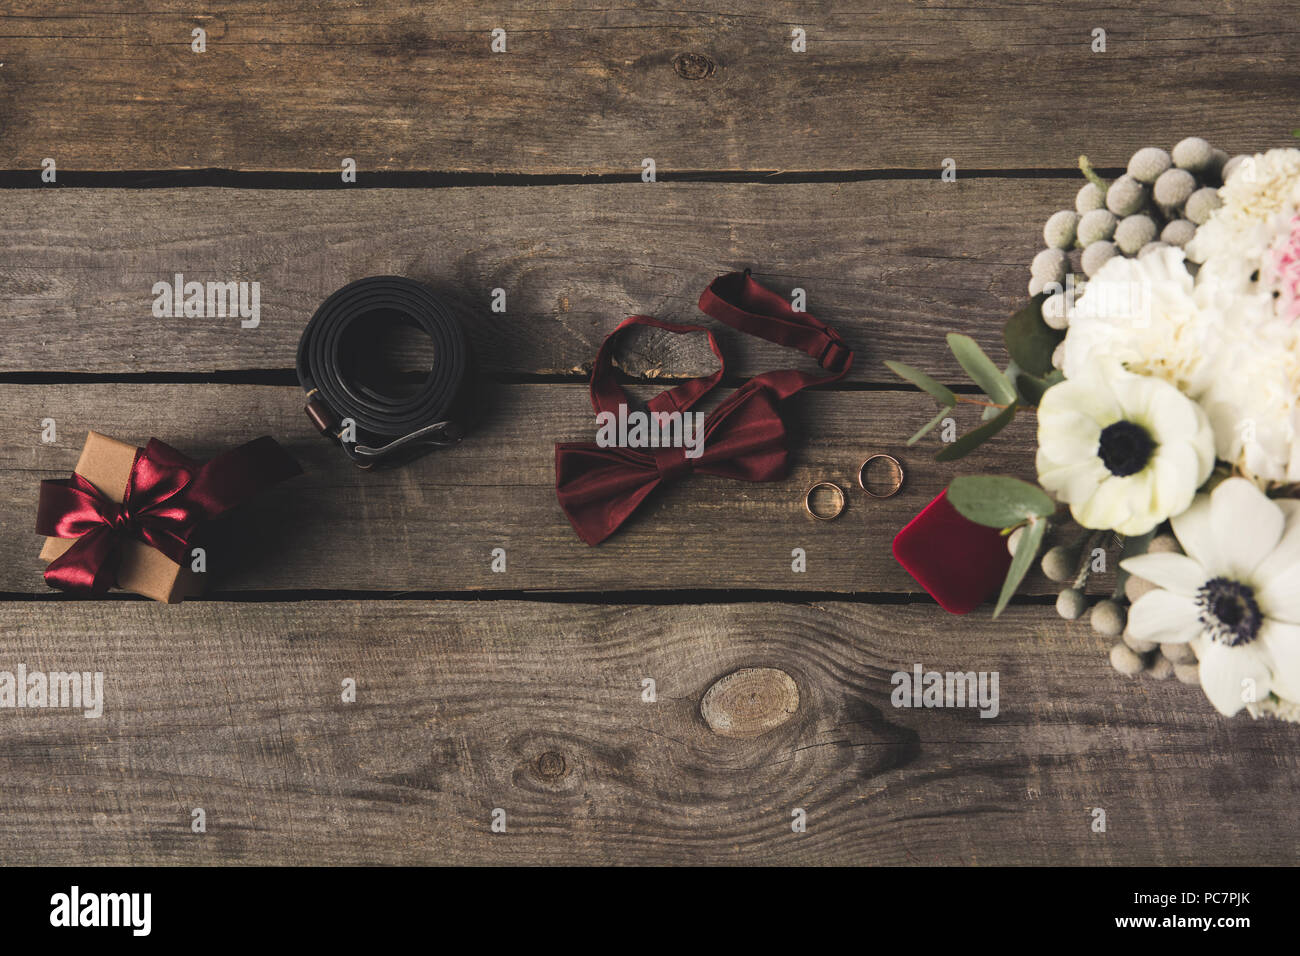 Flat lay with wedding rings jewelry box bridal bouquet gift and flat lay with wedding rings jewelry box bridal bouquet gift and grooms accessories on wooden tabletop junglespirit Image collections